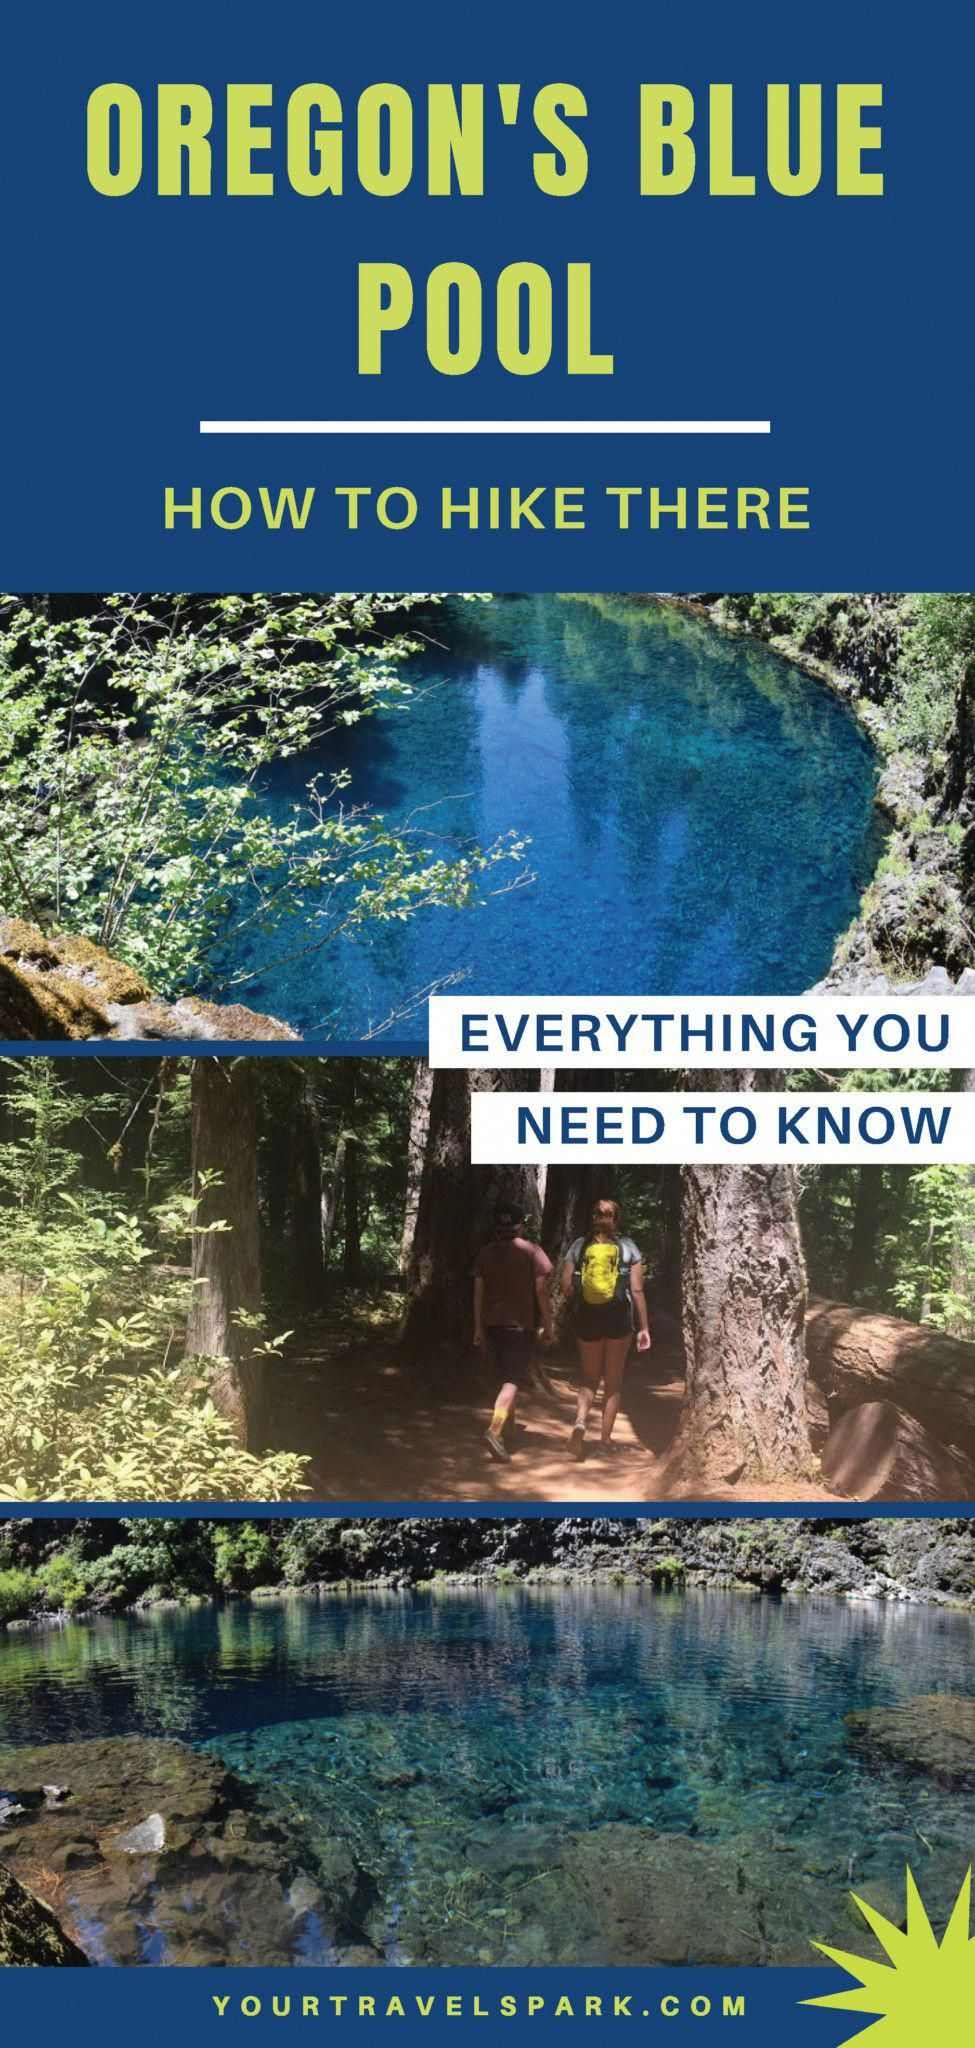 Oregon's Tamolitch Blue Pool hike: How to get there - Travel Spark